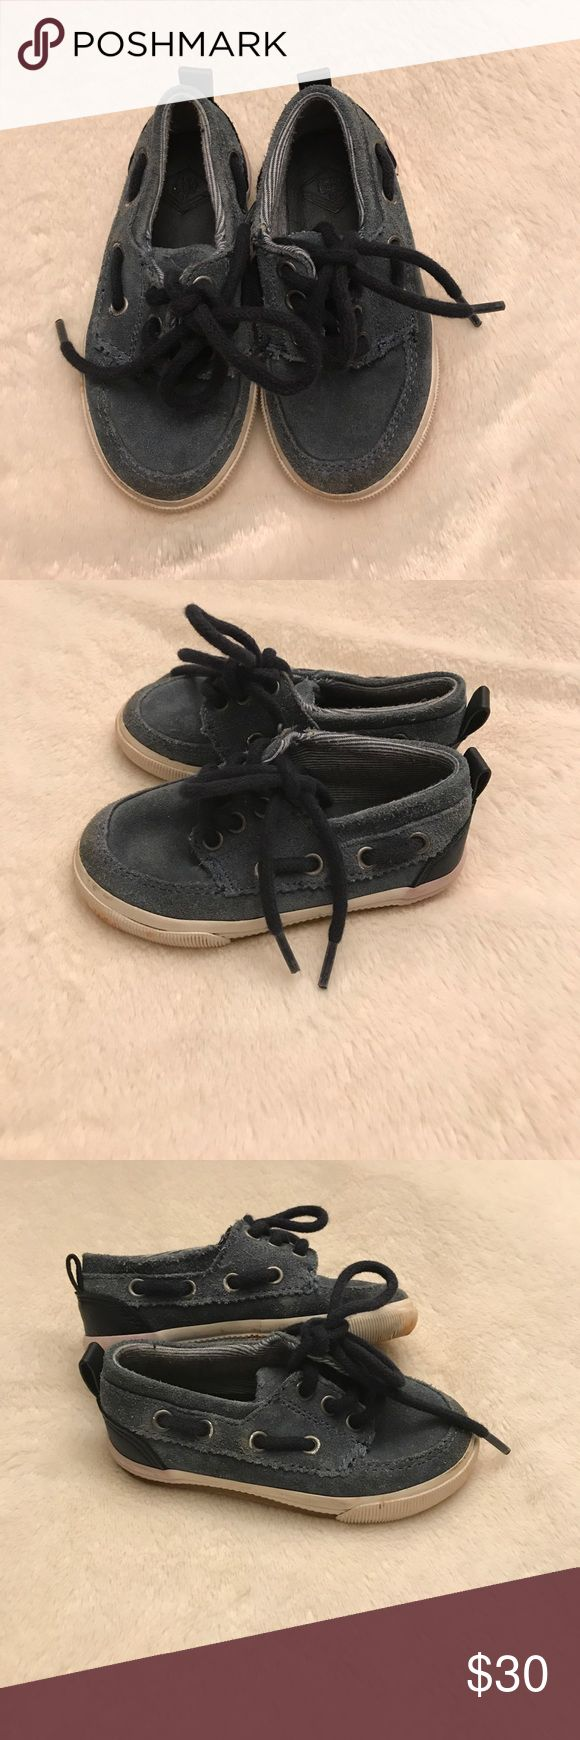 Zara leather Boat Shoes⭐️ Zara toddler boy leather boat shoes, they are So soft and so cute!! Worn very lightly by my son for one spring season. Zara Shoes